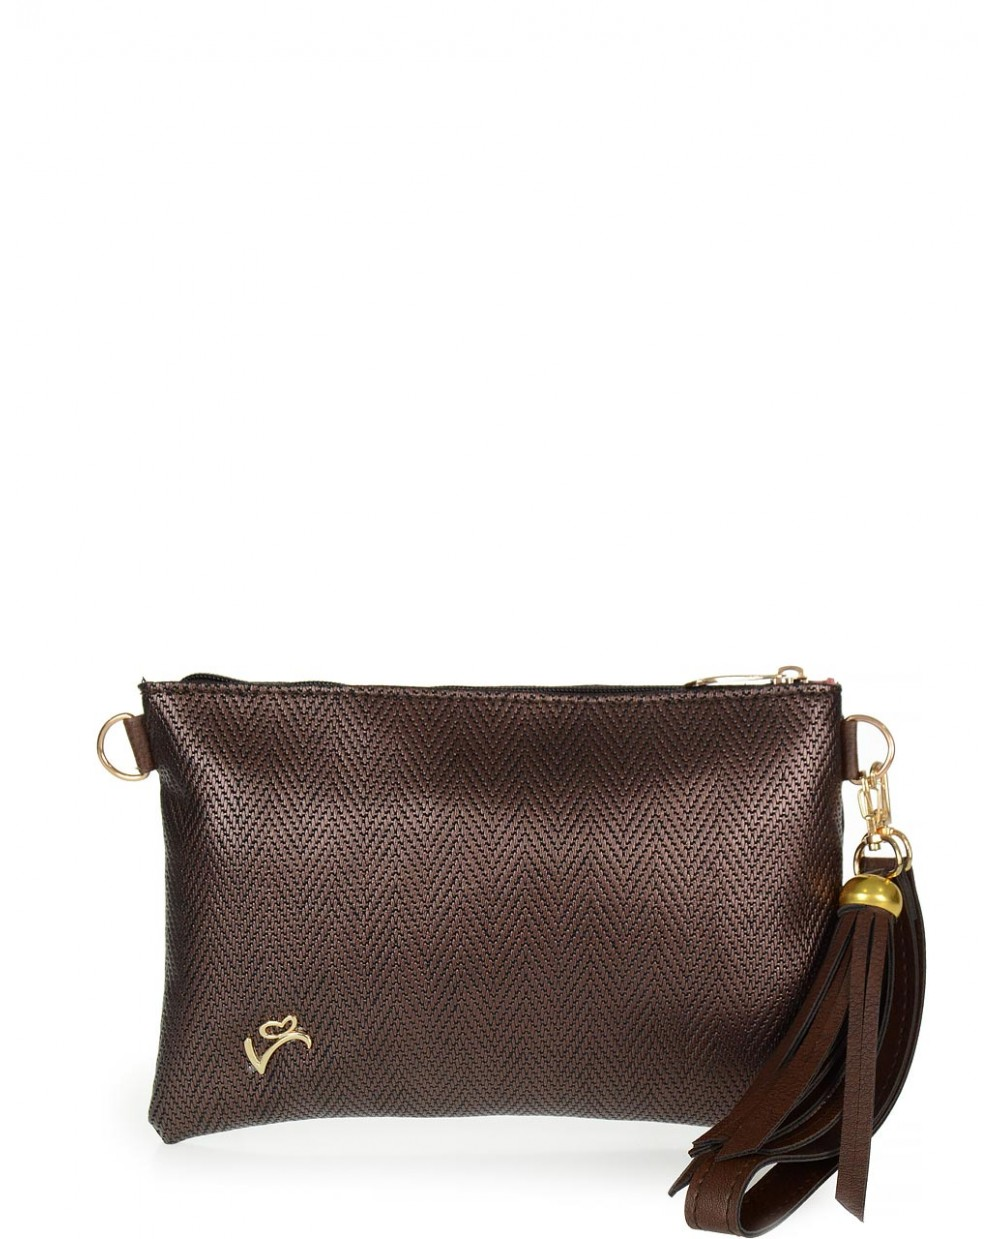 Brown metallic envelope bag veta (999-10)